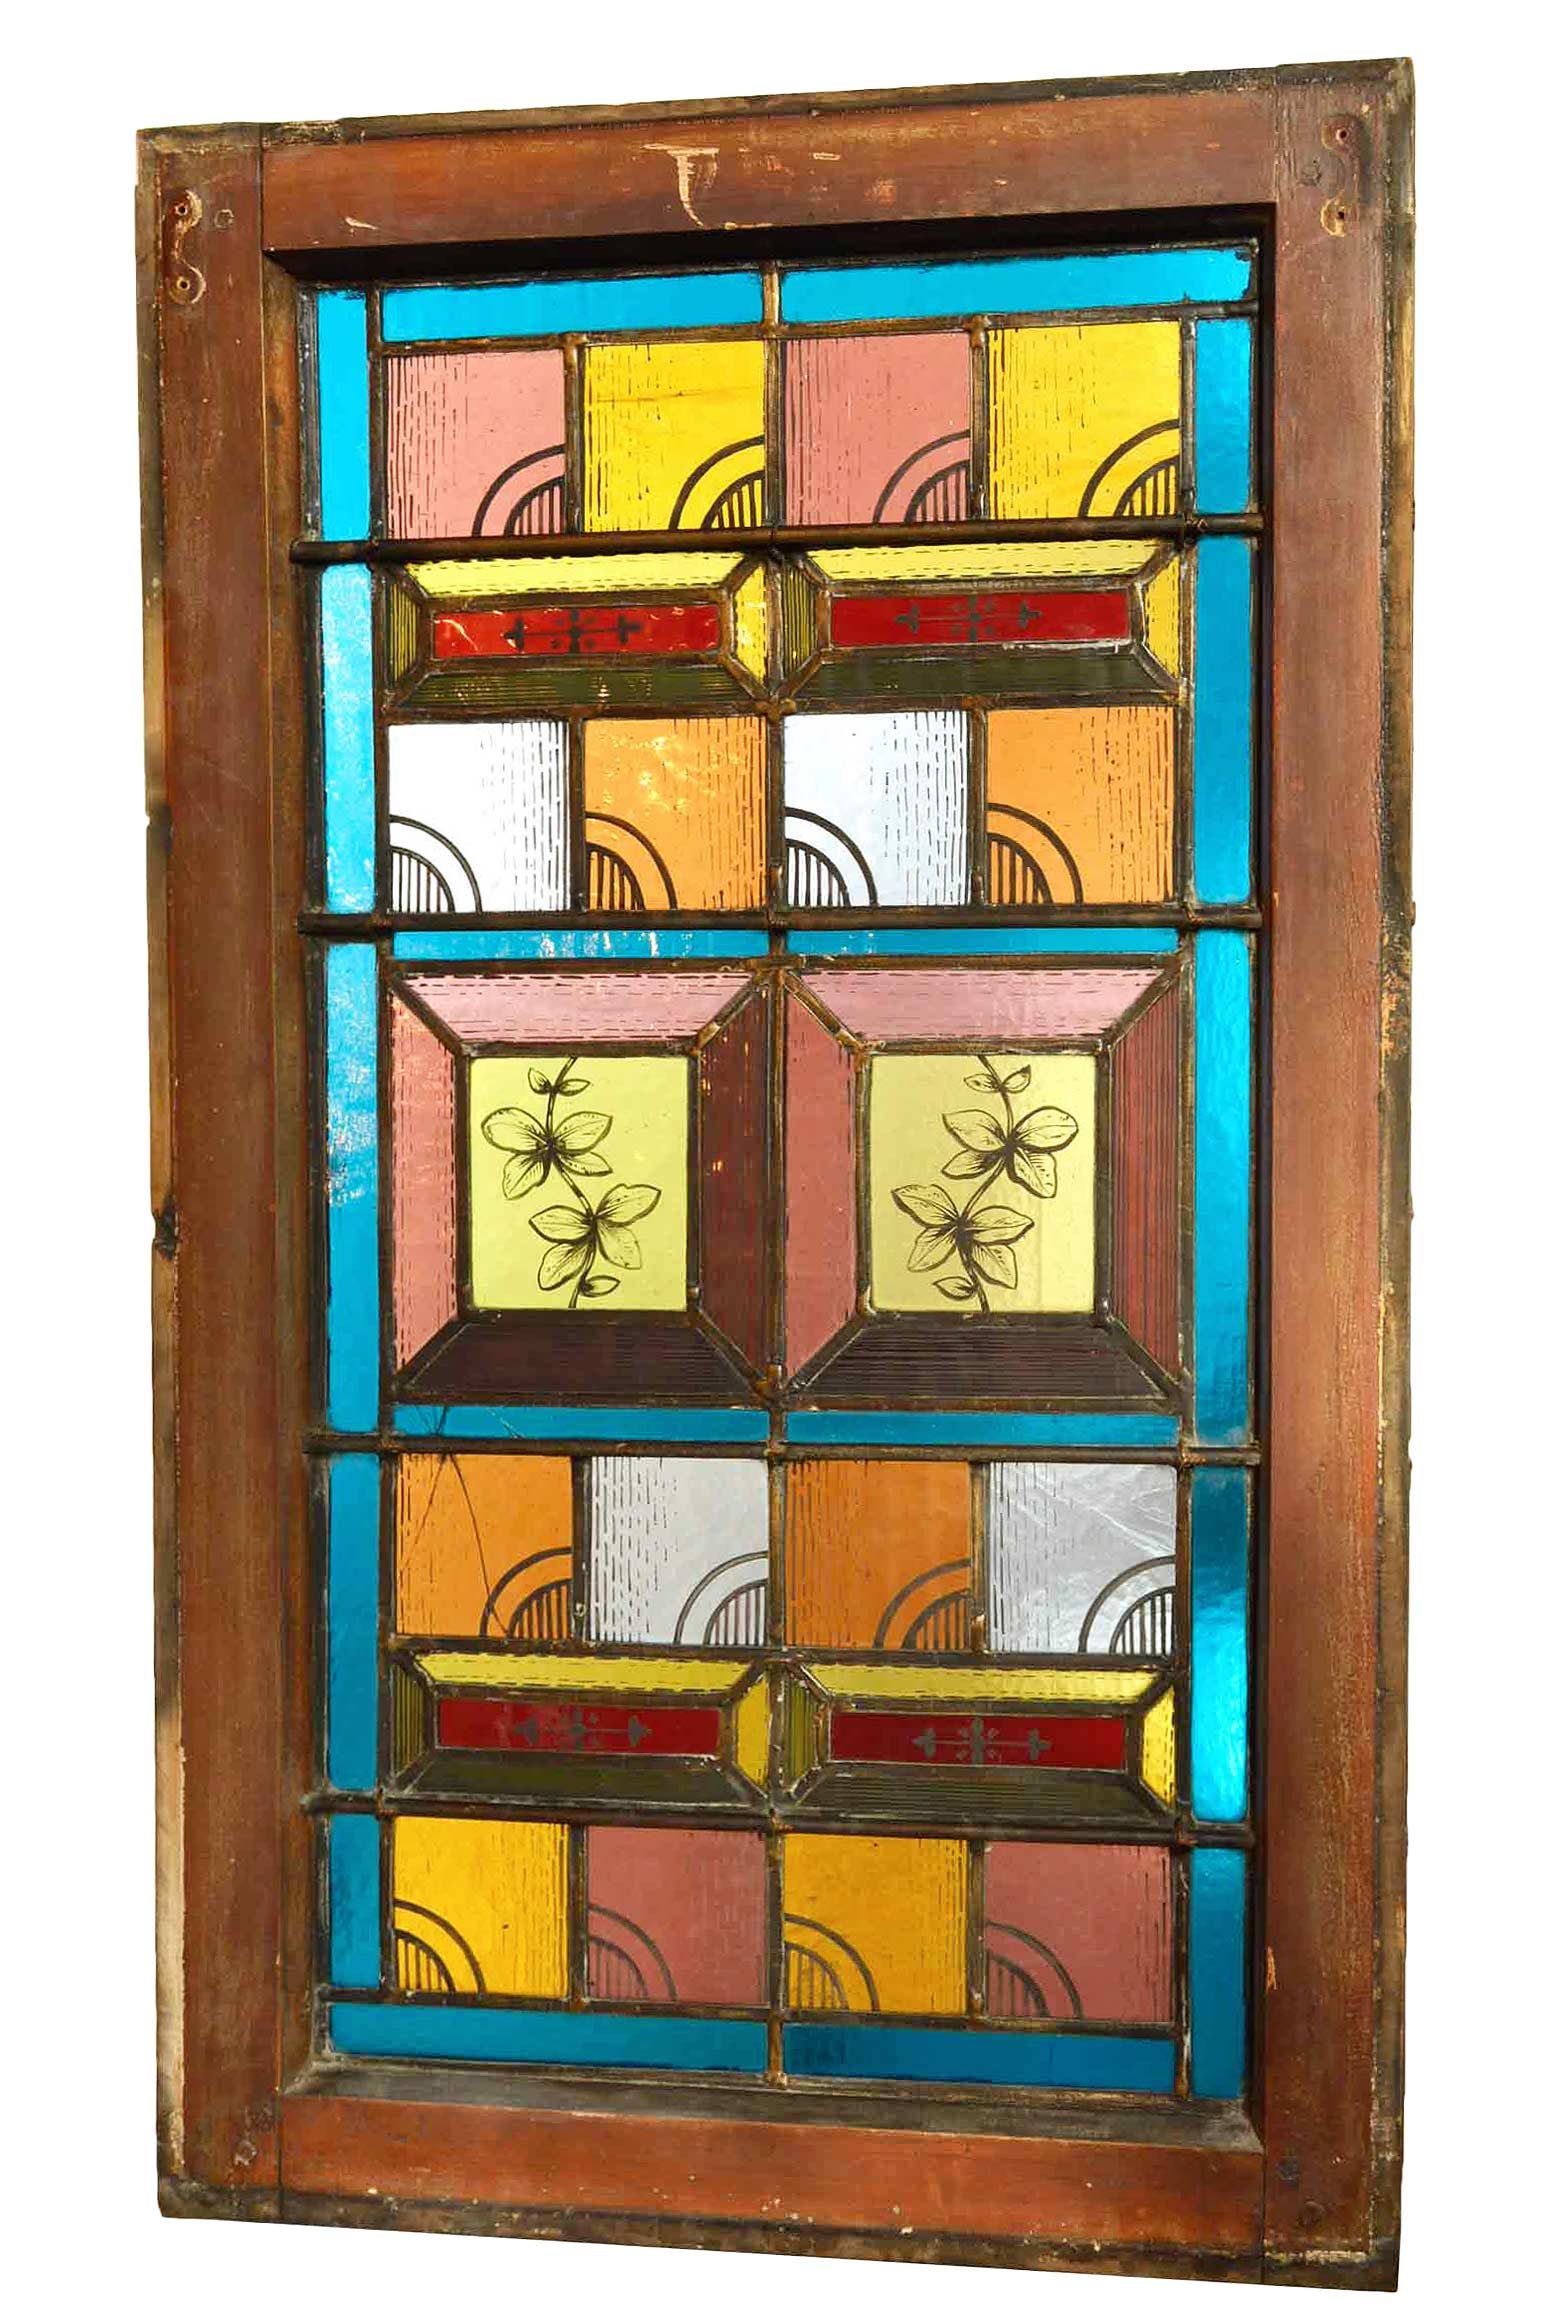 46018-stained-glass-window-back.jpg